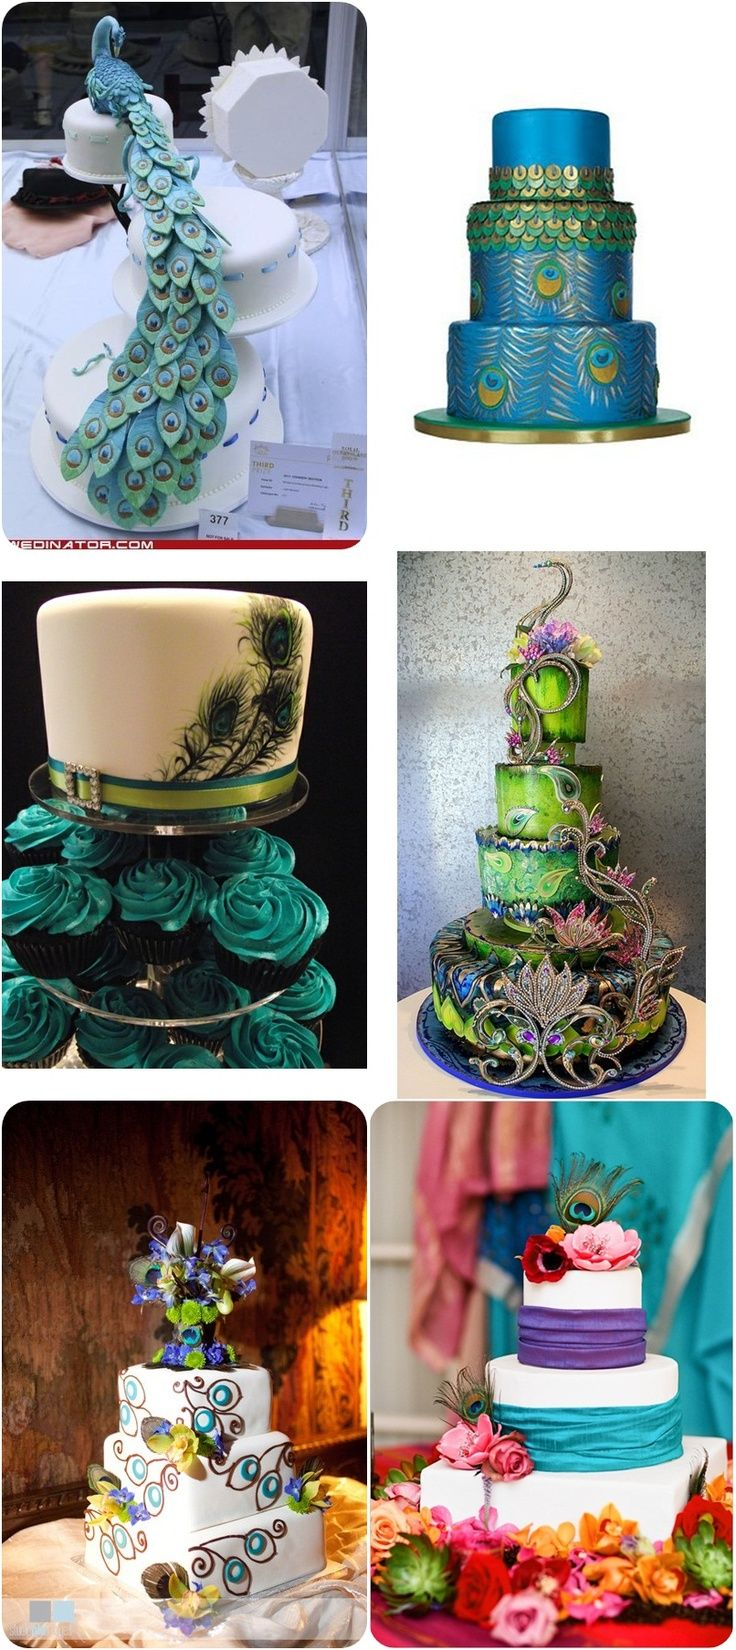 peacock wedding cakes designs | Peacock wedding centerpieces #Christmas #thanksgiving #Holiday #quote